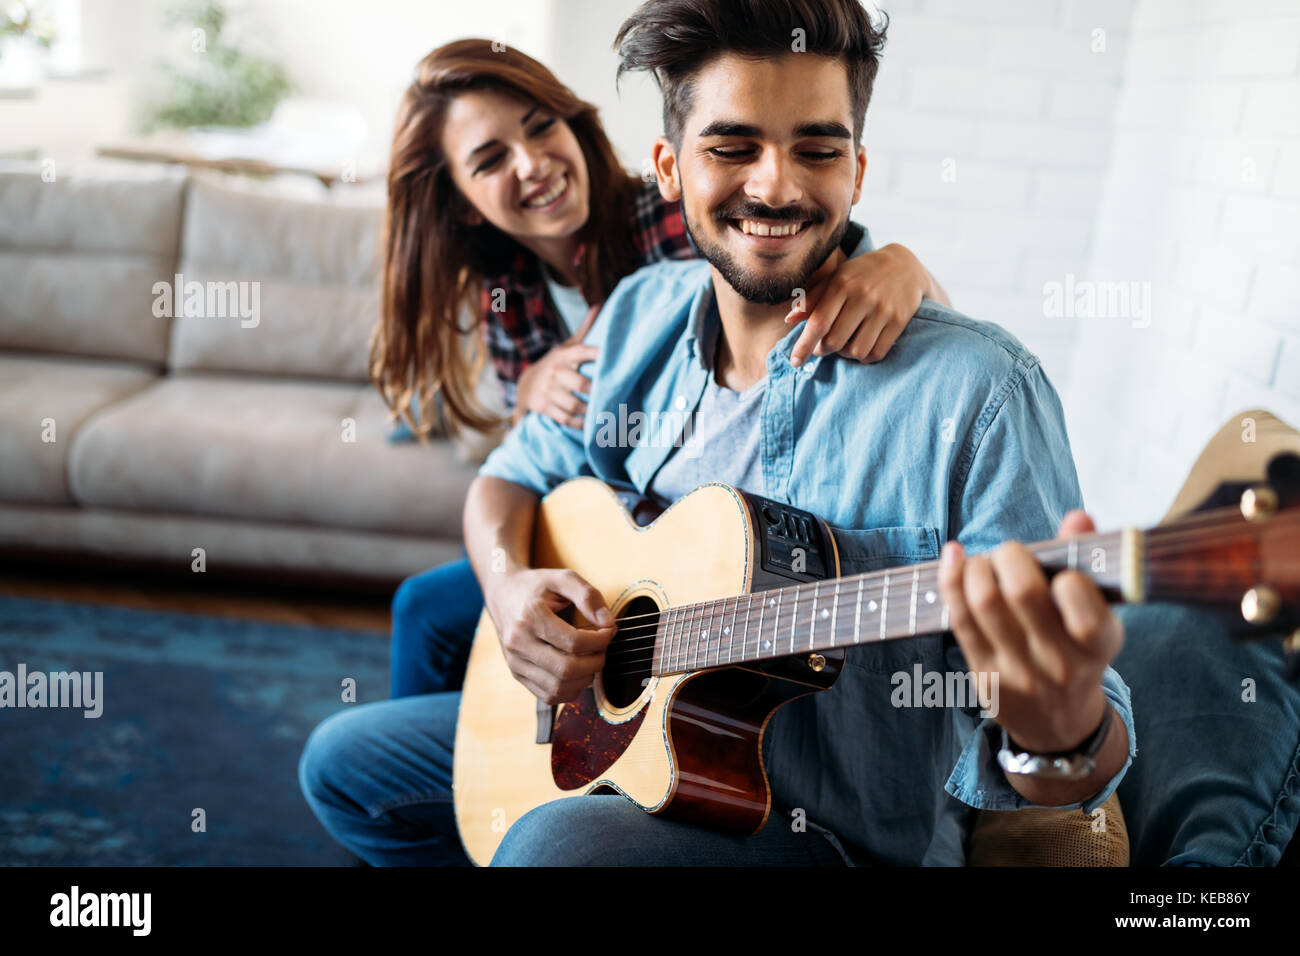 Young handsome man playing guitar for his girlfriend - Stock Image